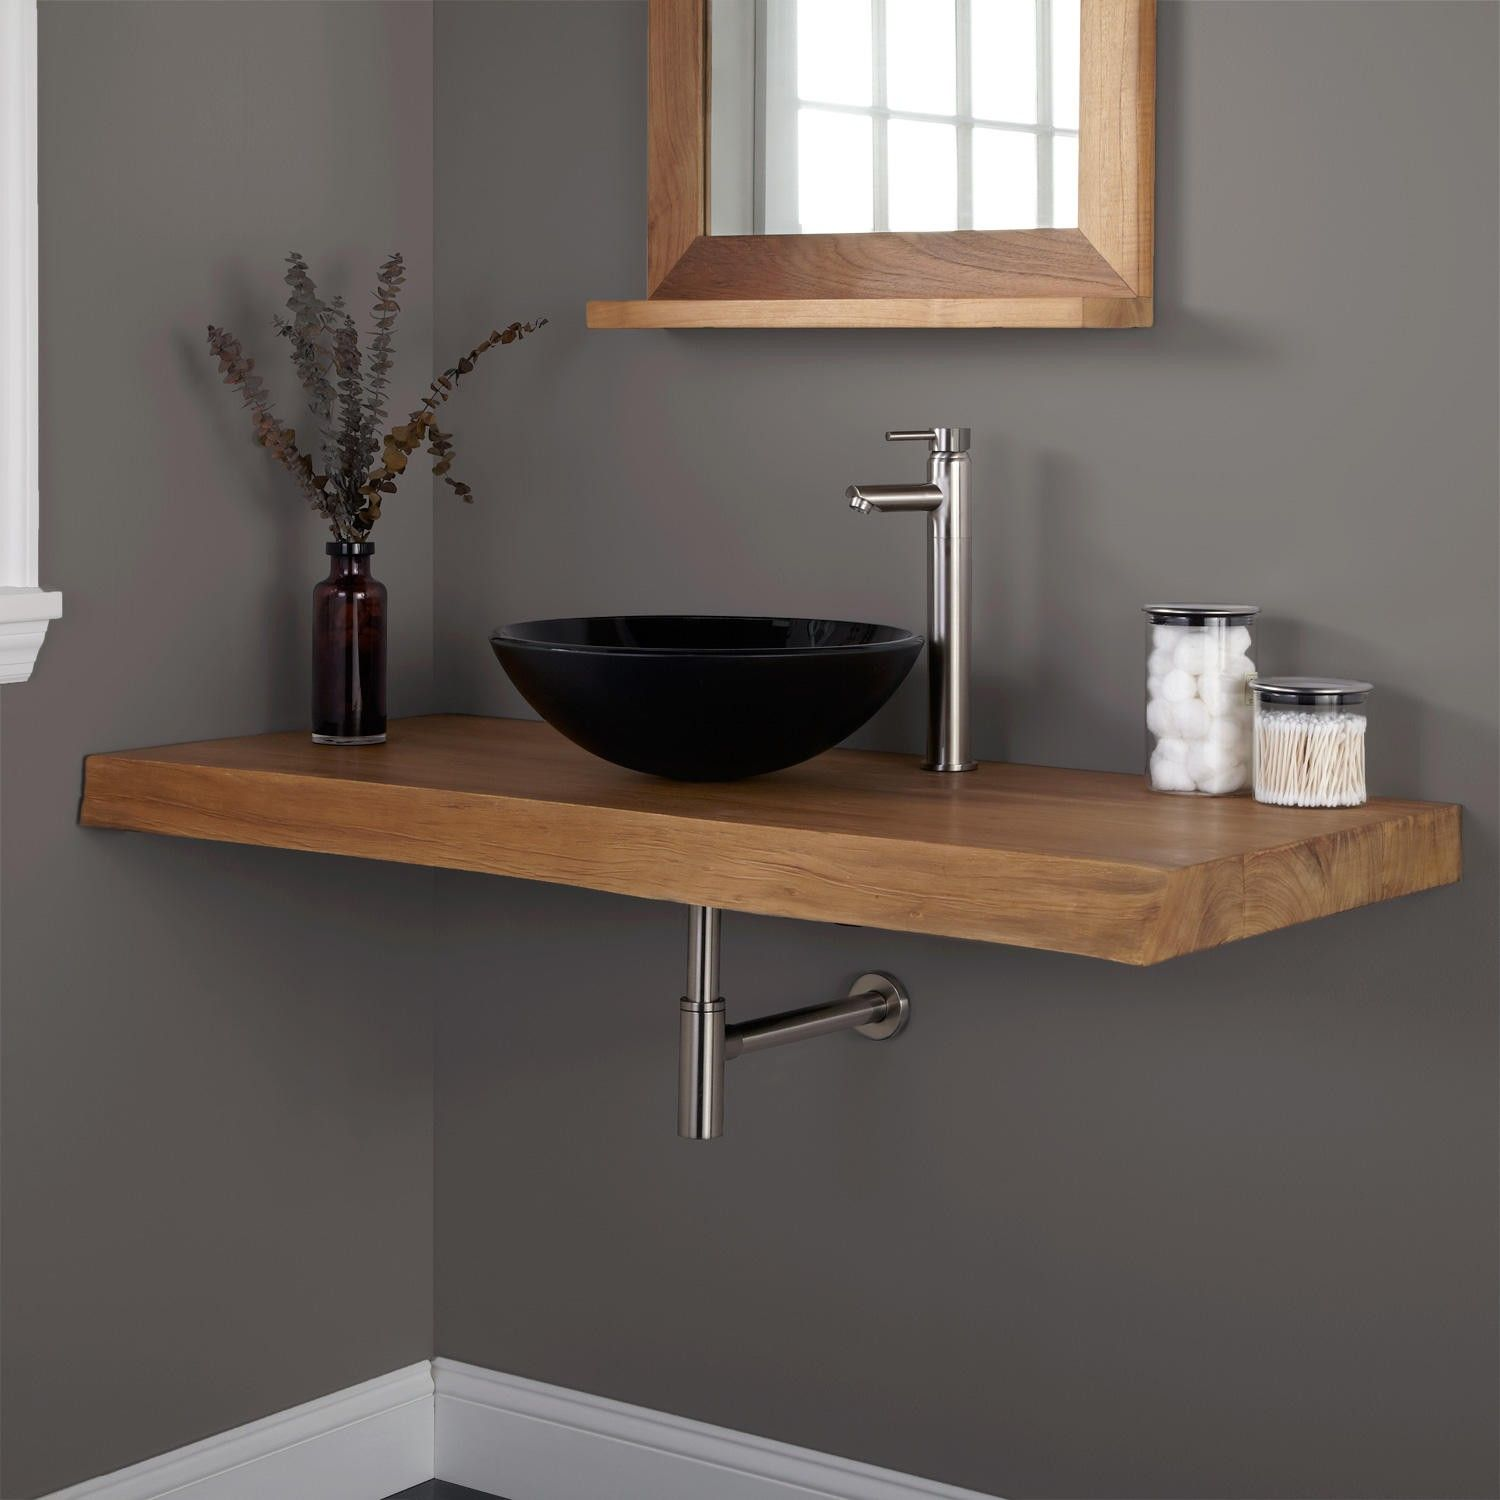 sink on top of vanity. 49  Natural Edge Teak Wall Mount Vanity Top for Vessel Sink